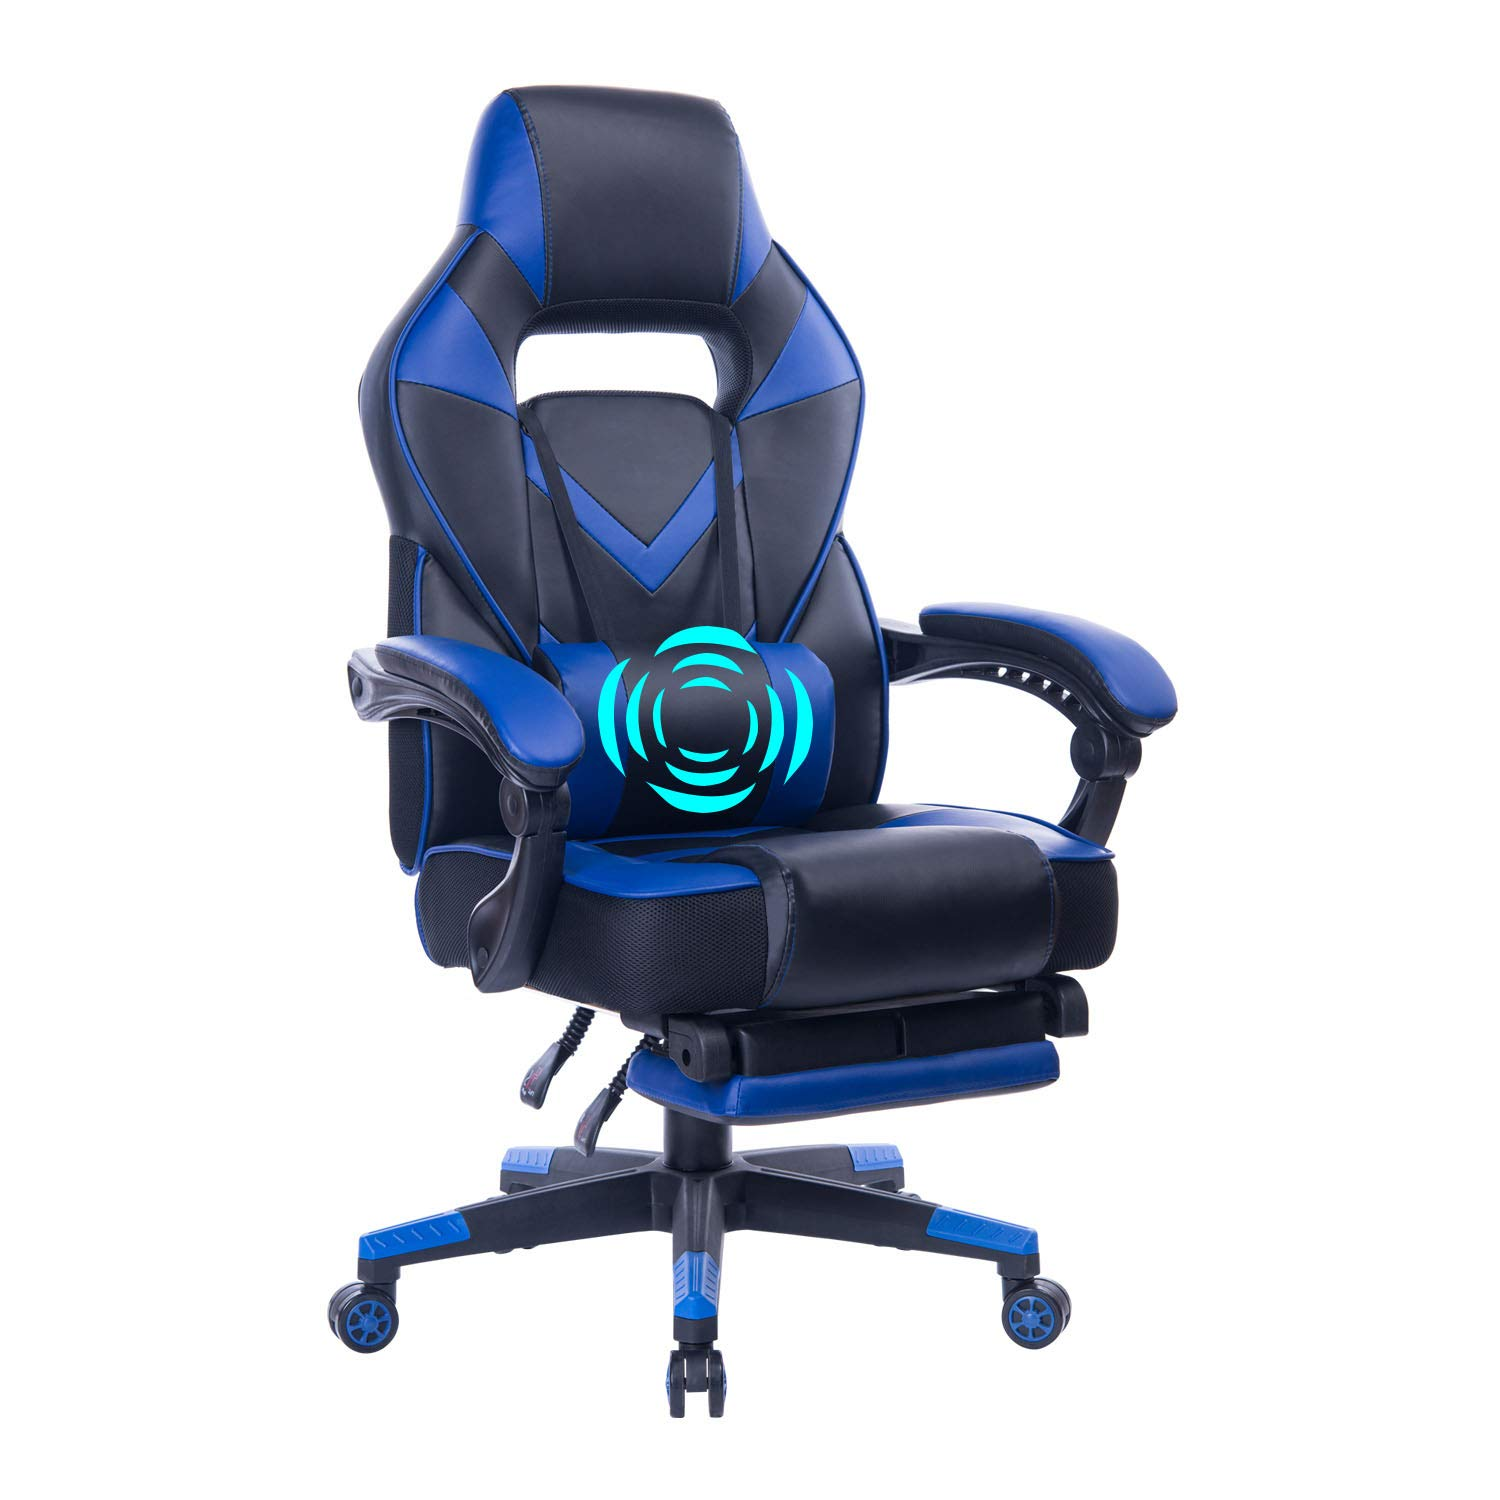 HEALGEN Reclining Gaming Chair with Adjustable Massage Lumbar Pillow and Footrest- Memory Foam PC Computer Racing Chair - Ergonomic High-Back Desk Office Chair GM005-Blue by HEALGEN